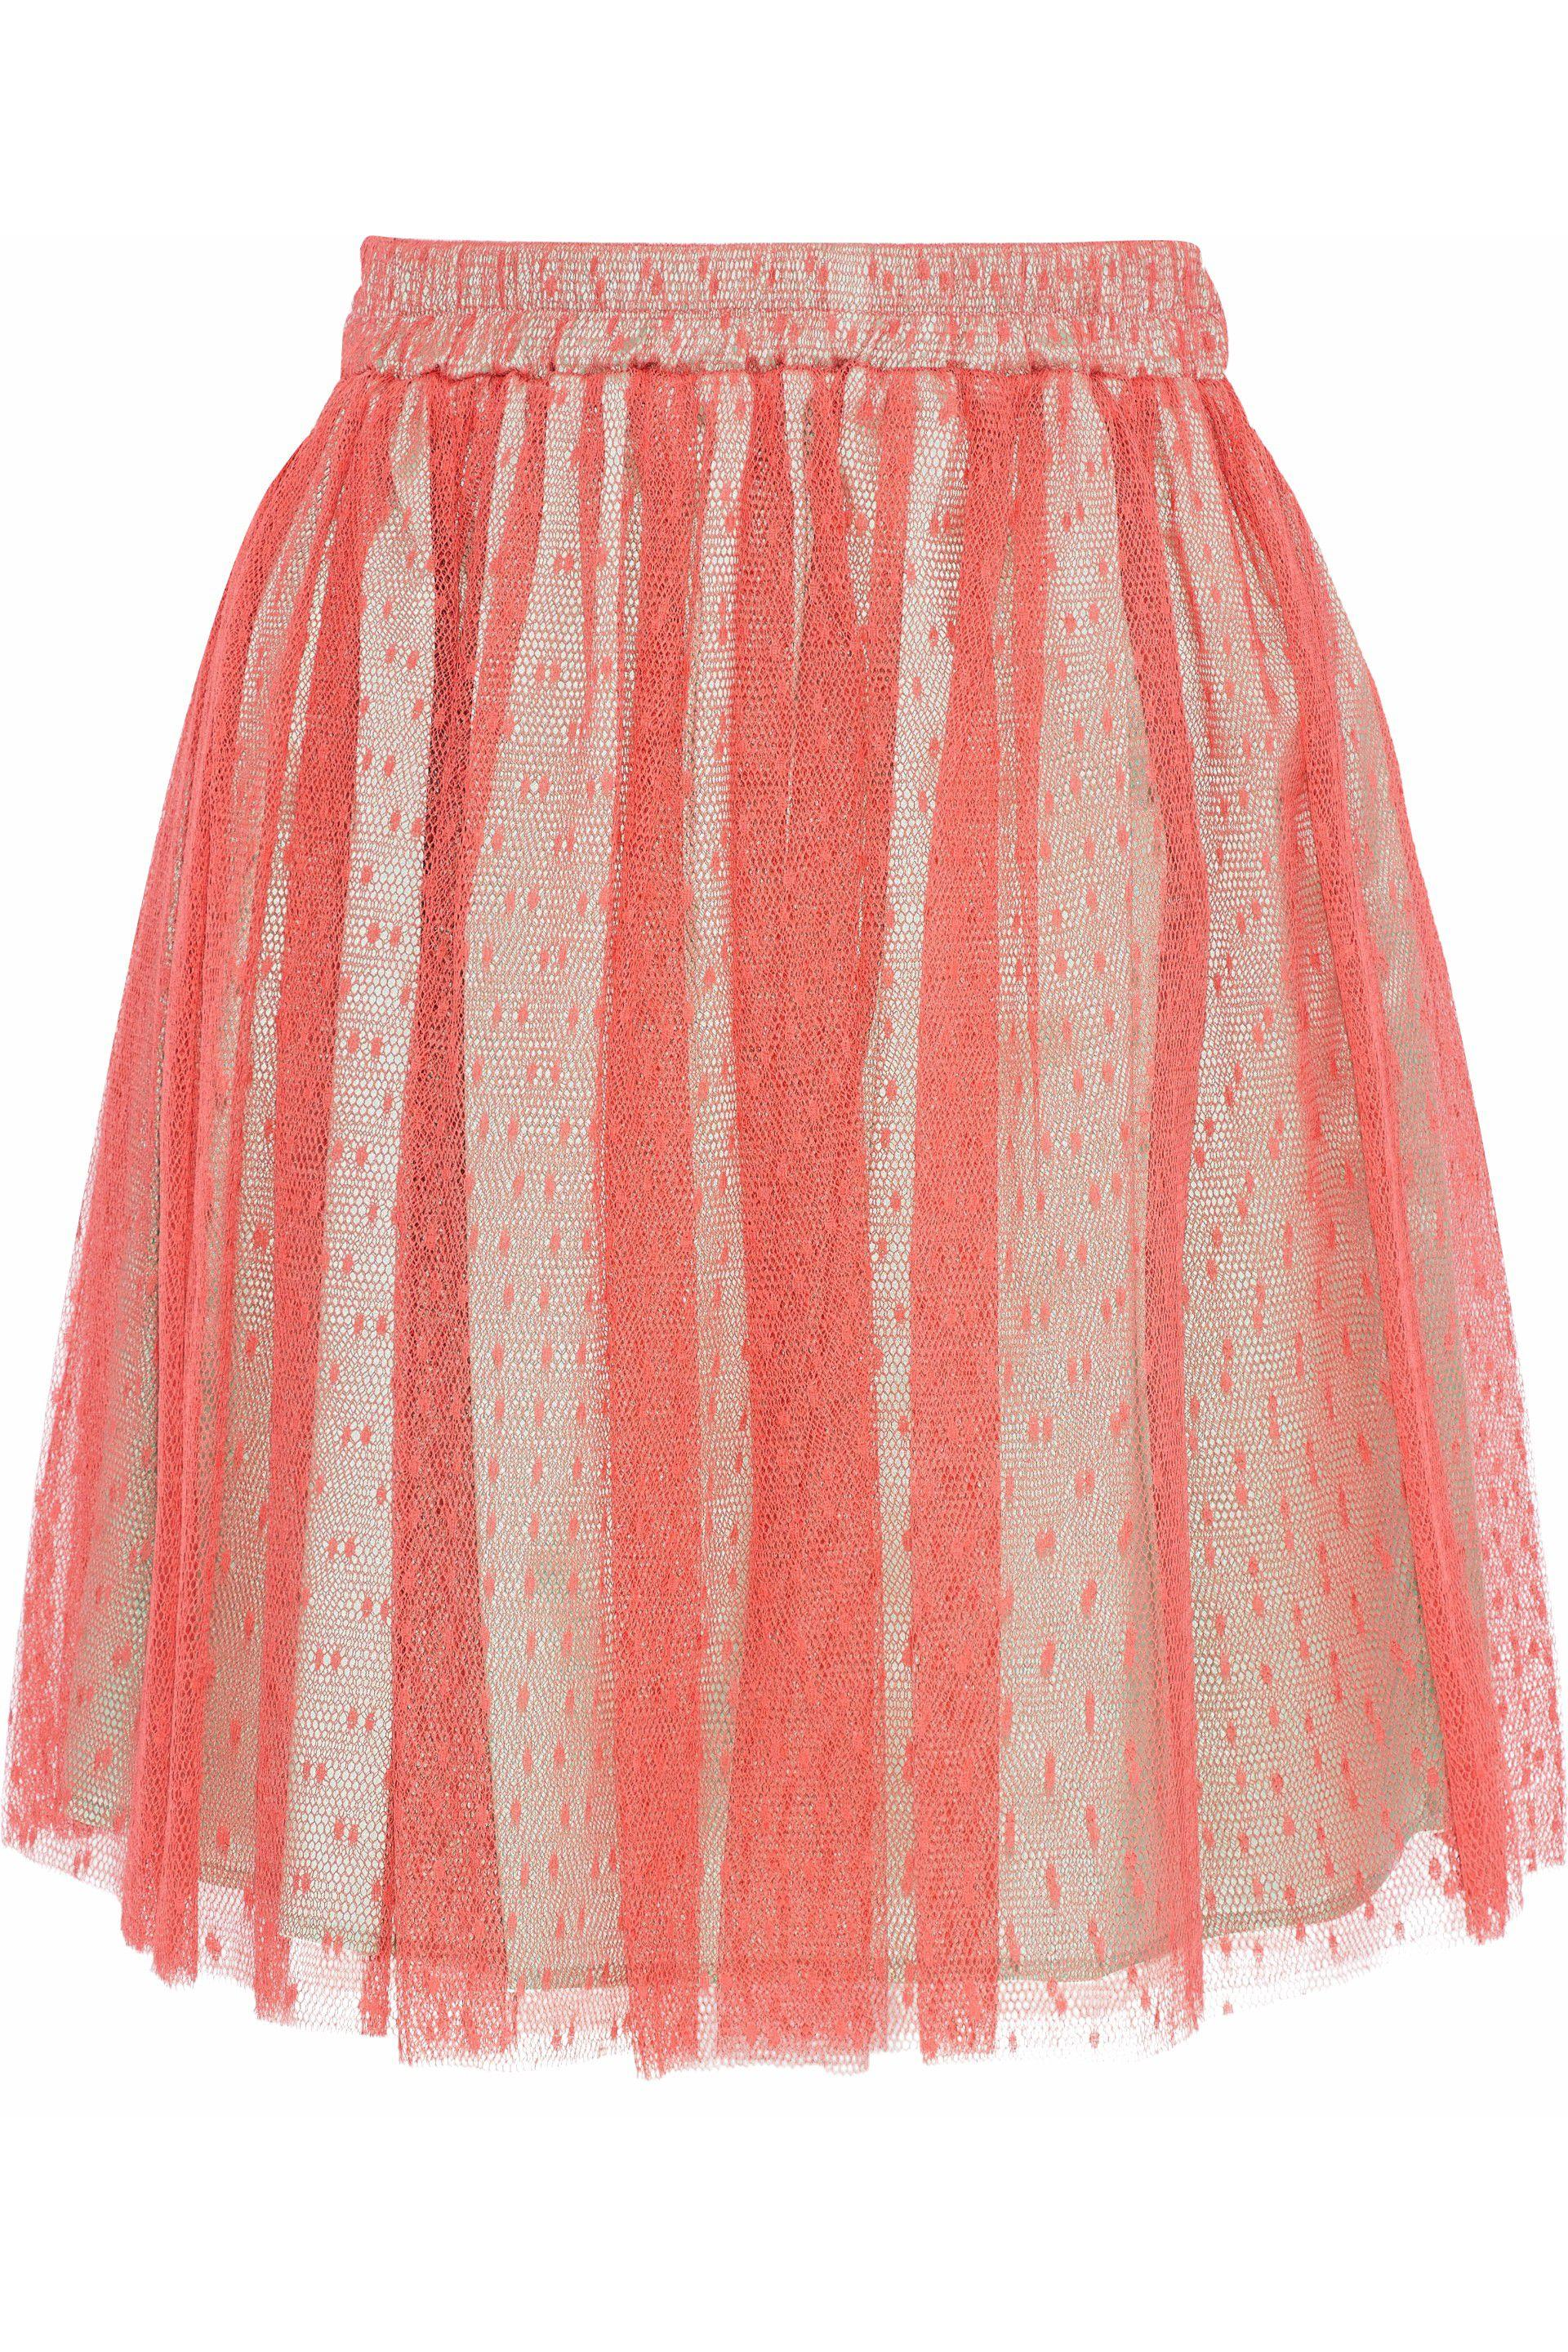 d364f9eace RED Valentino. Women's Pink Woman Pleated Point D'esprit Mini Skirt Coral